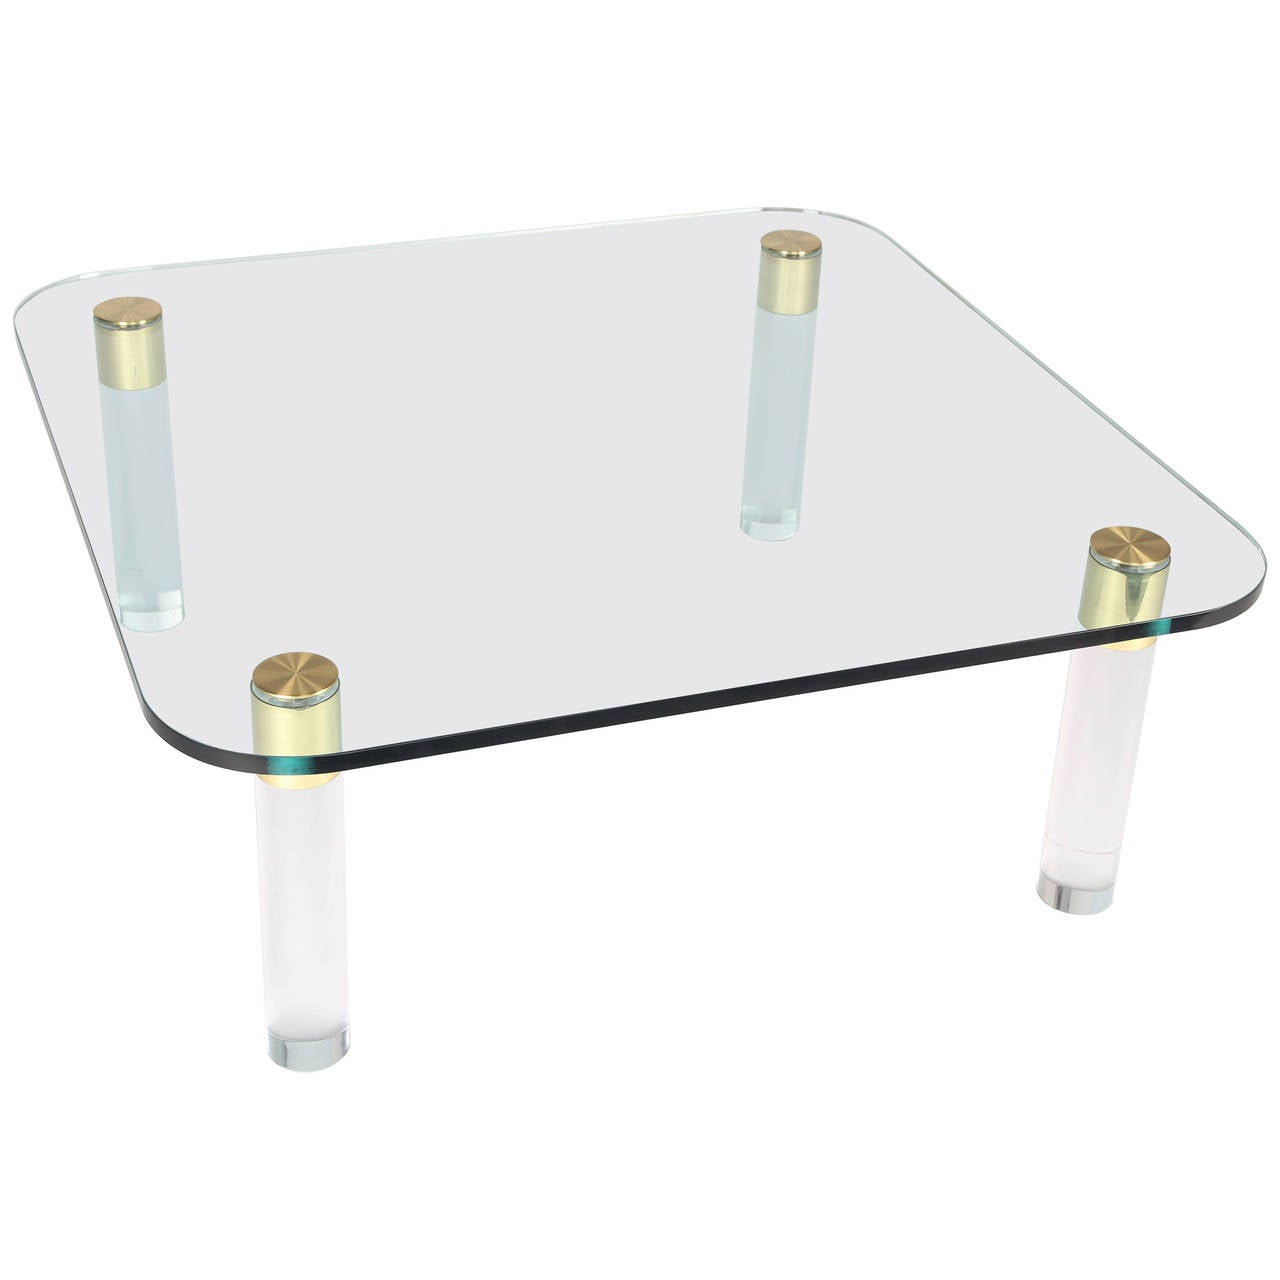 1970s Brass, Glass and Lucite Cocktail Table by Pace